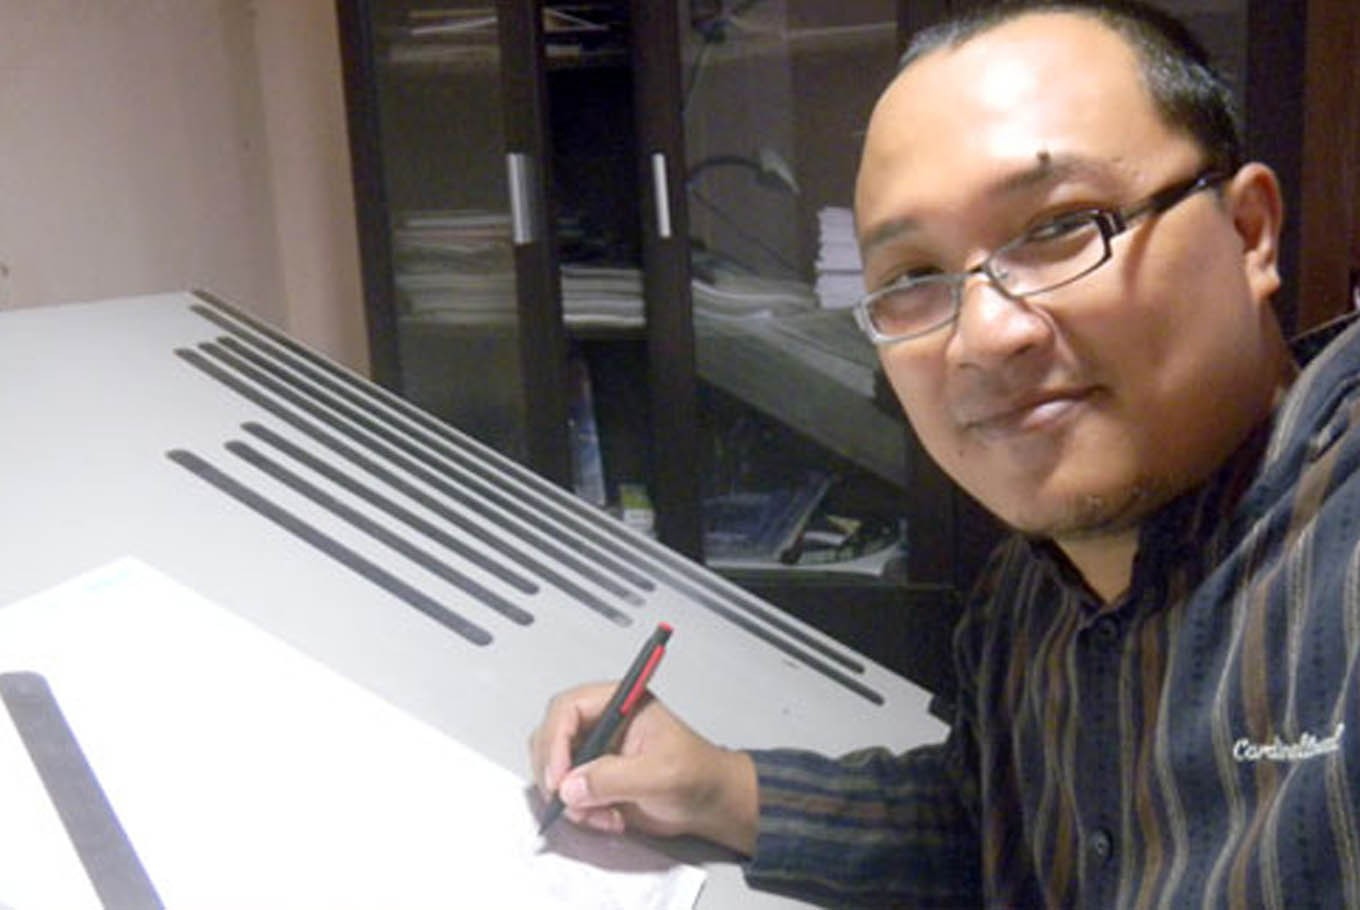 Ardian Syaf mulls future after being fired by Marvel